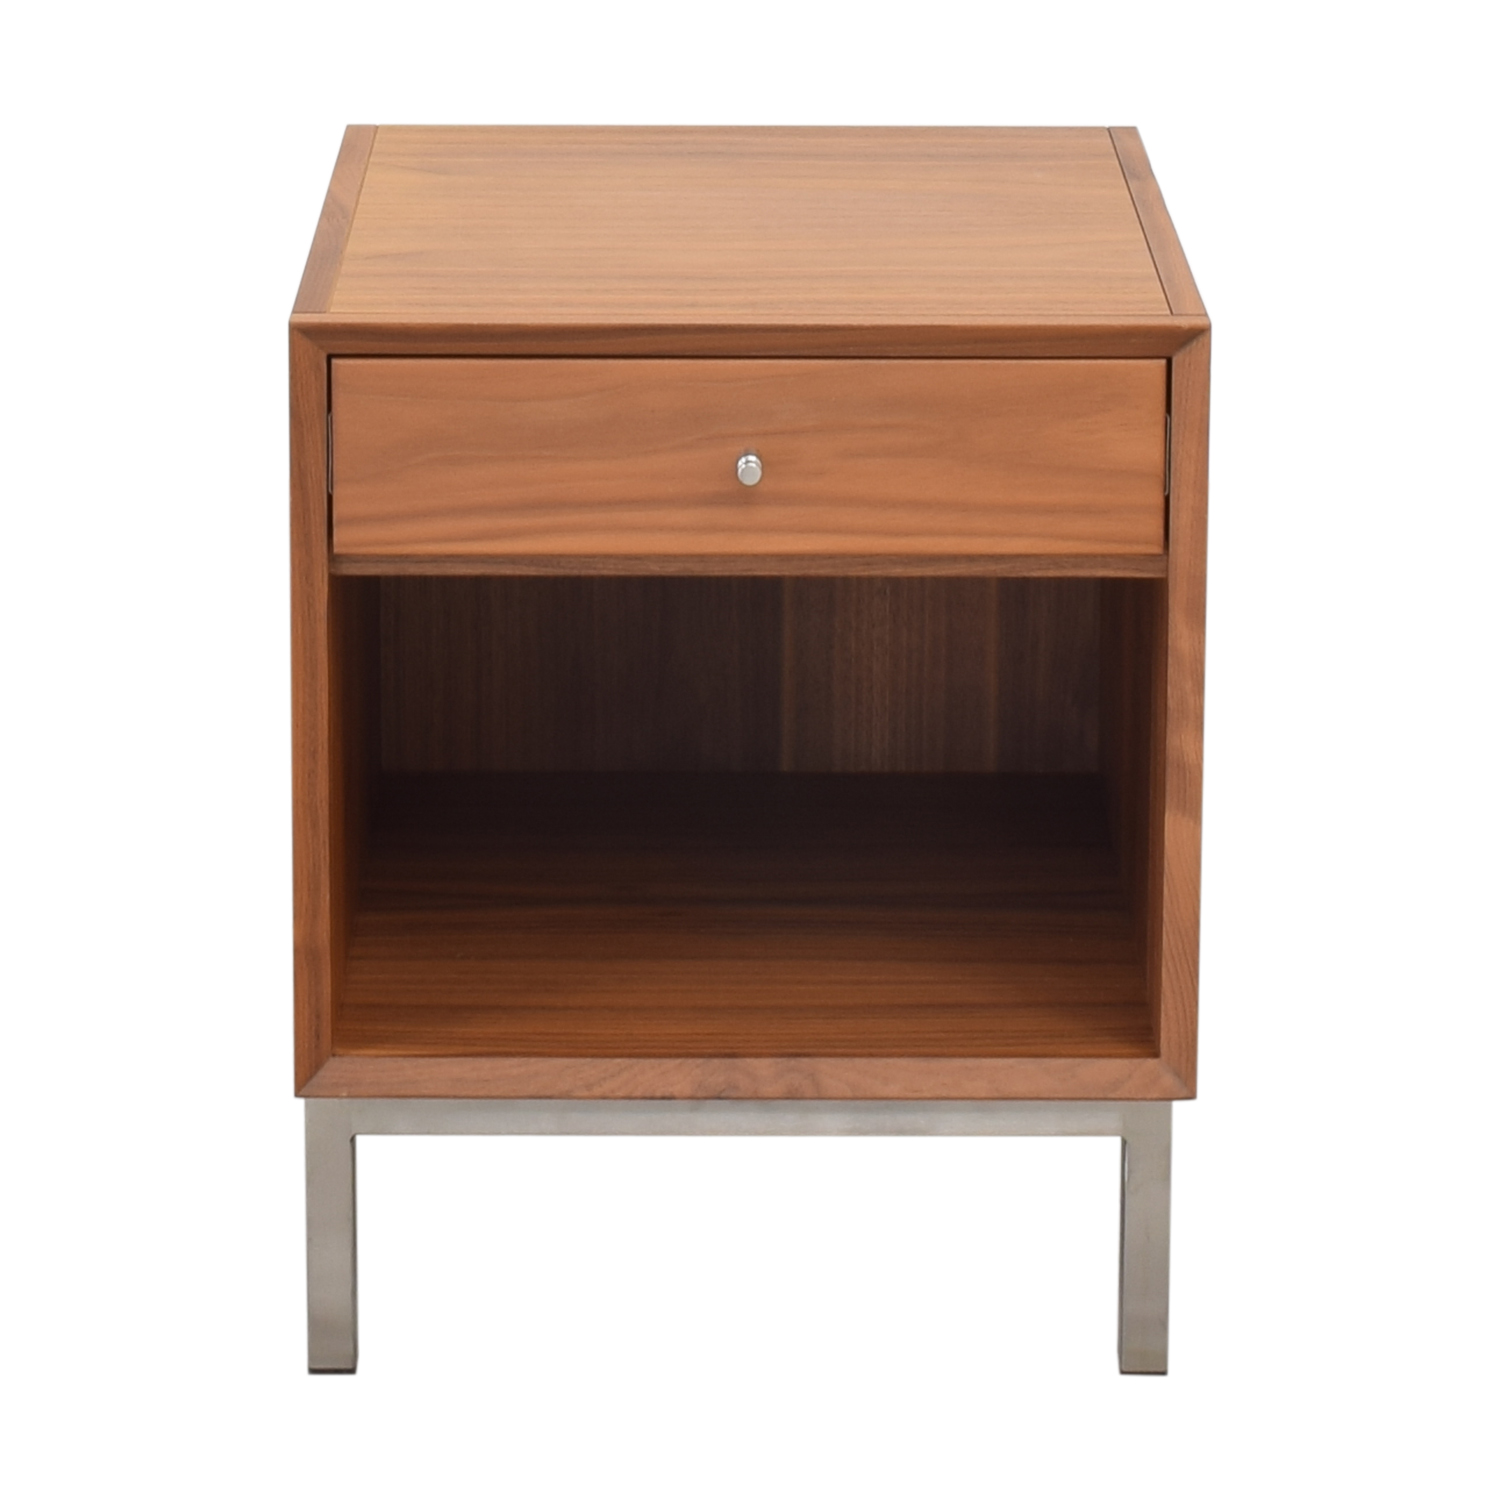 Room & Board Delano Nightstand / End Tables